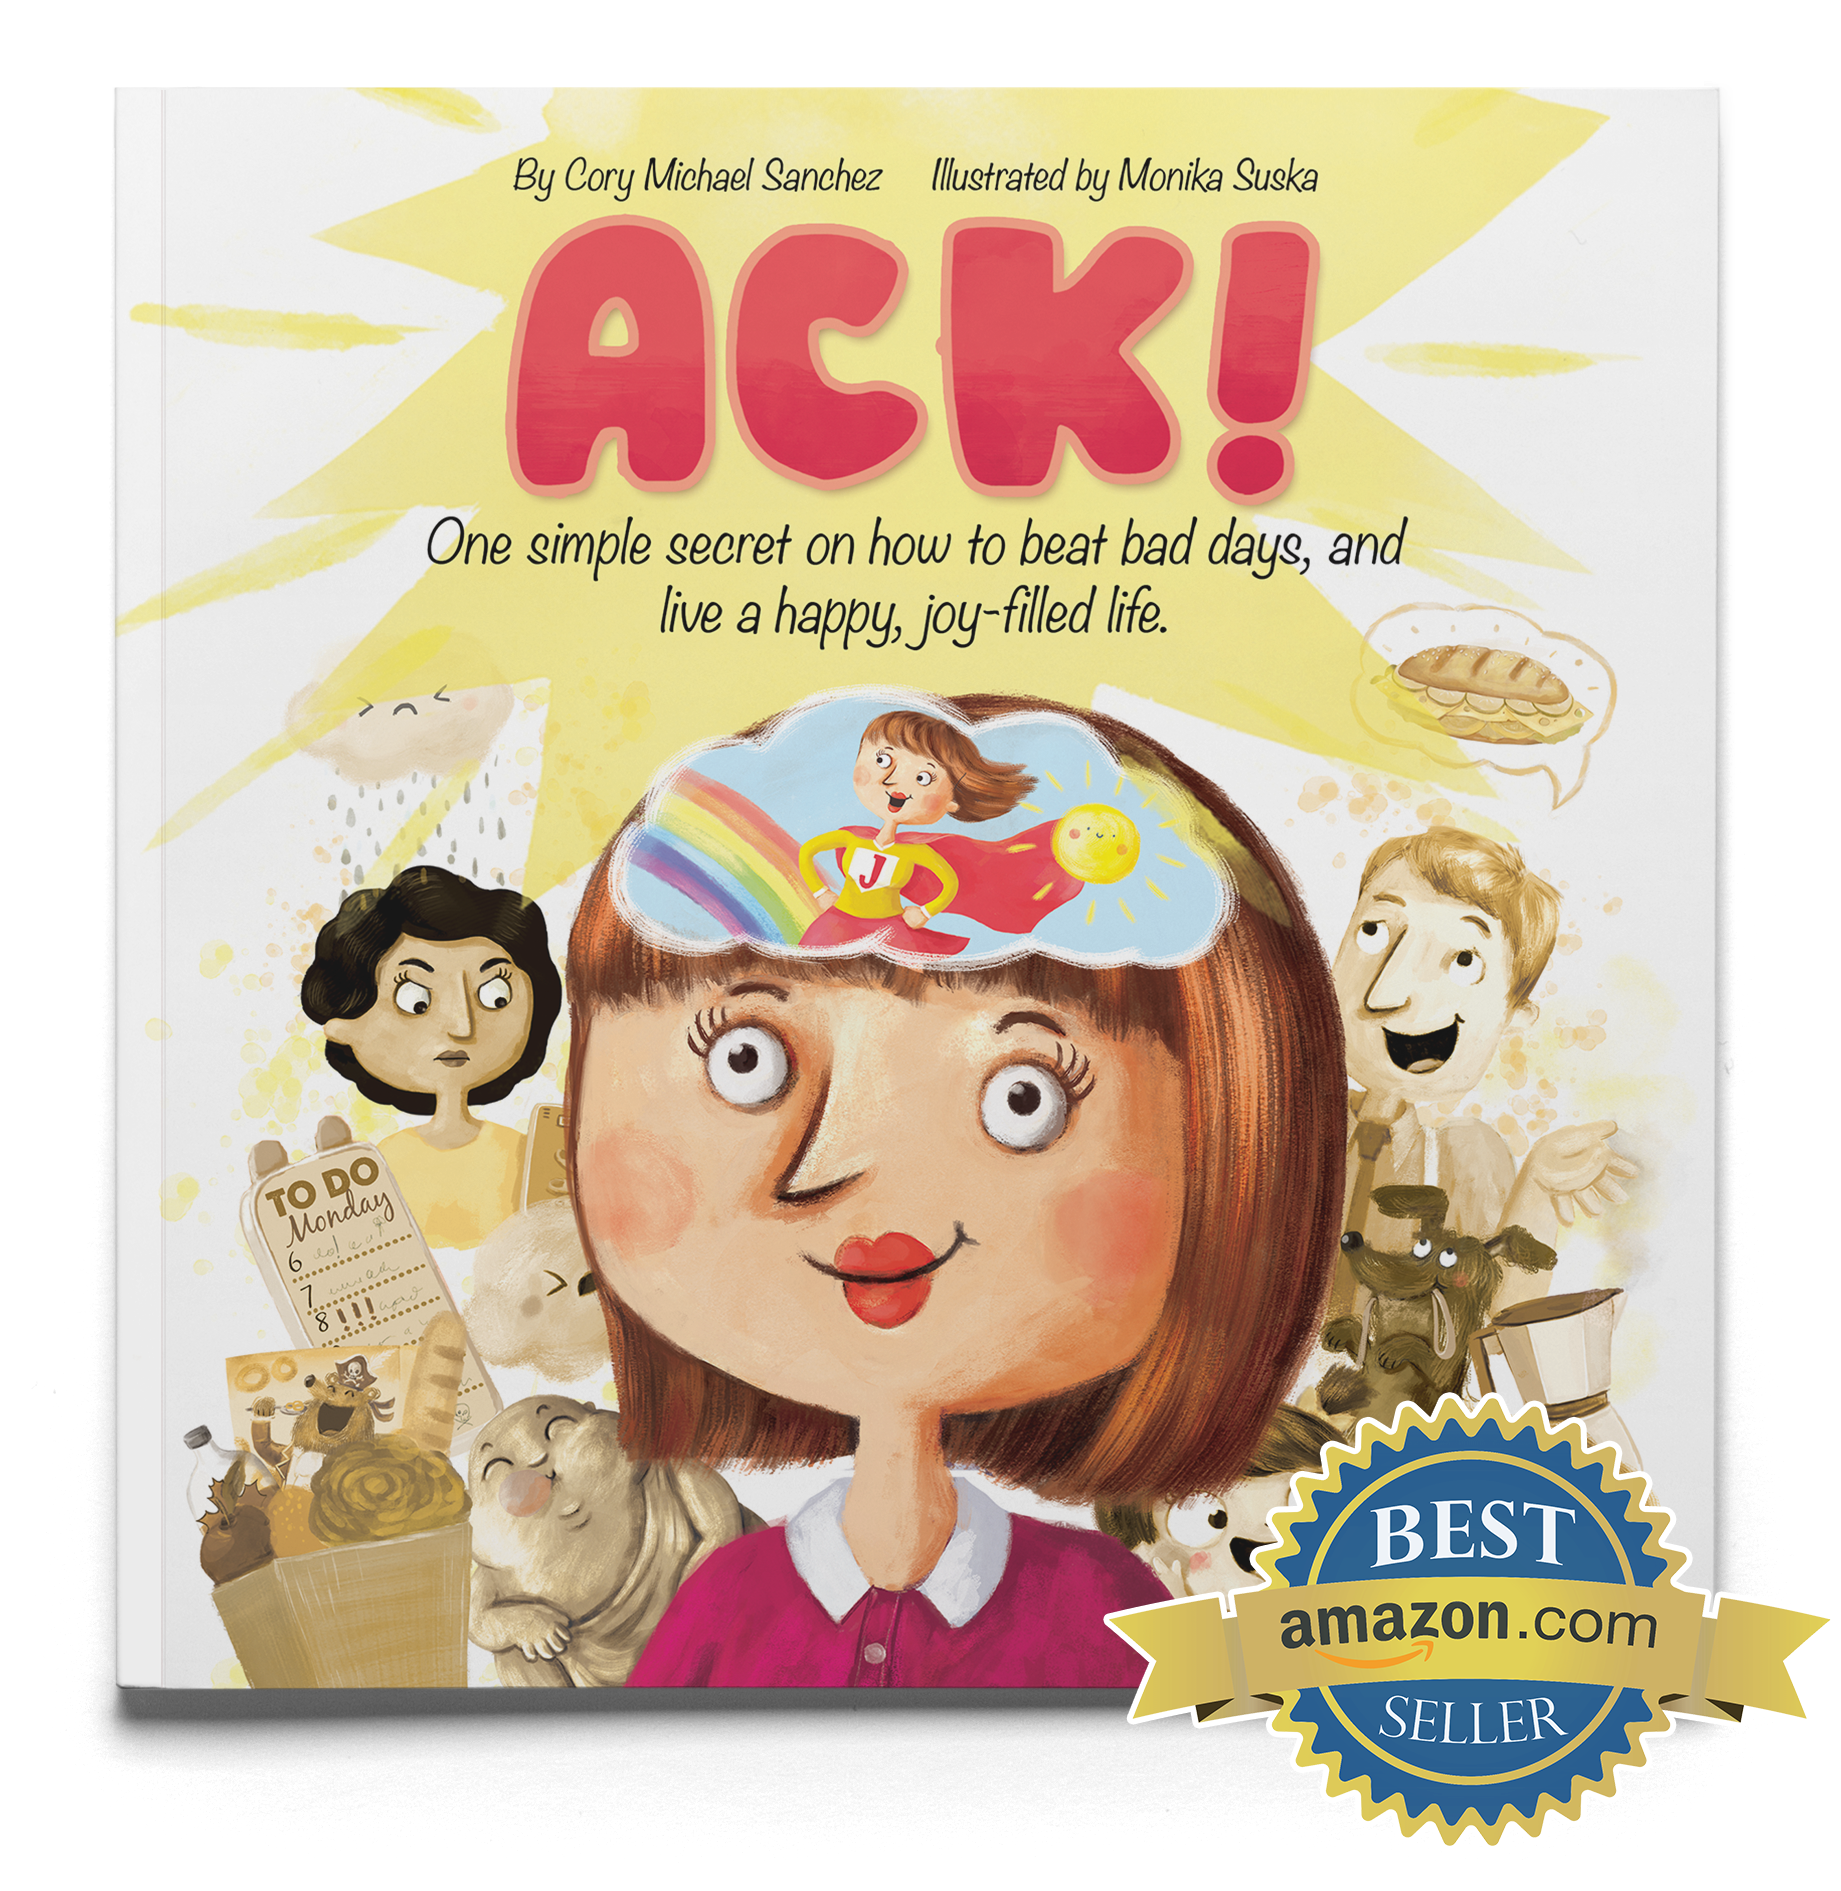 ACK! THE BOOK